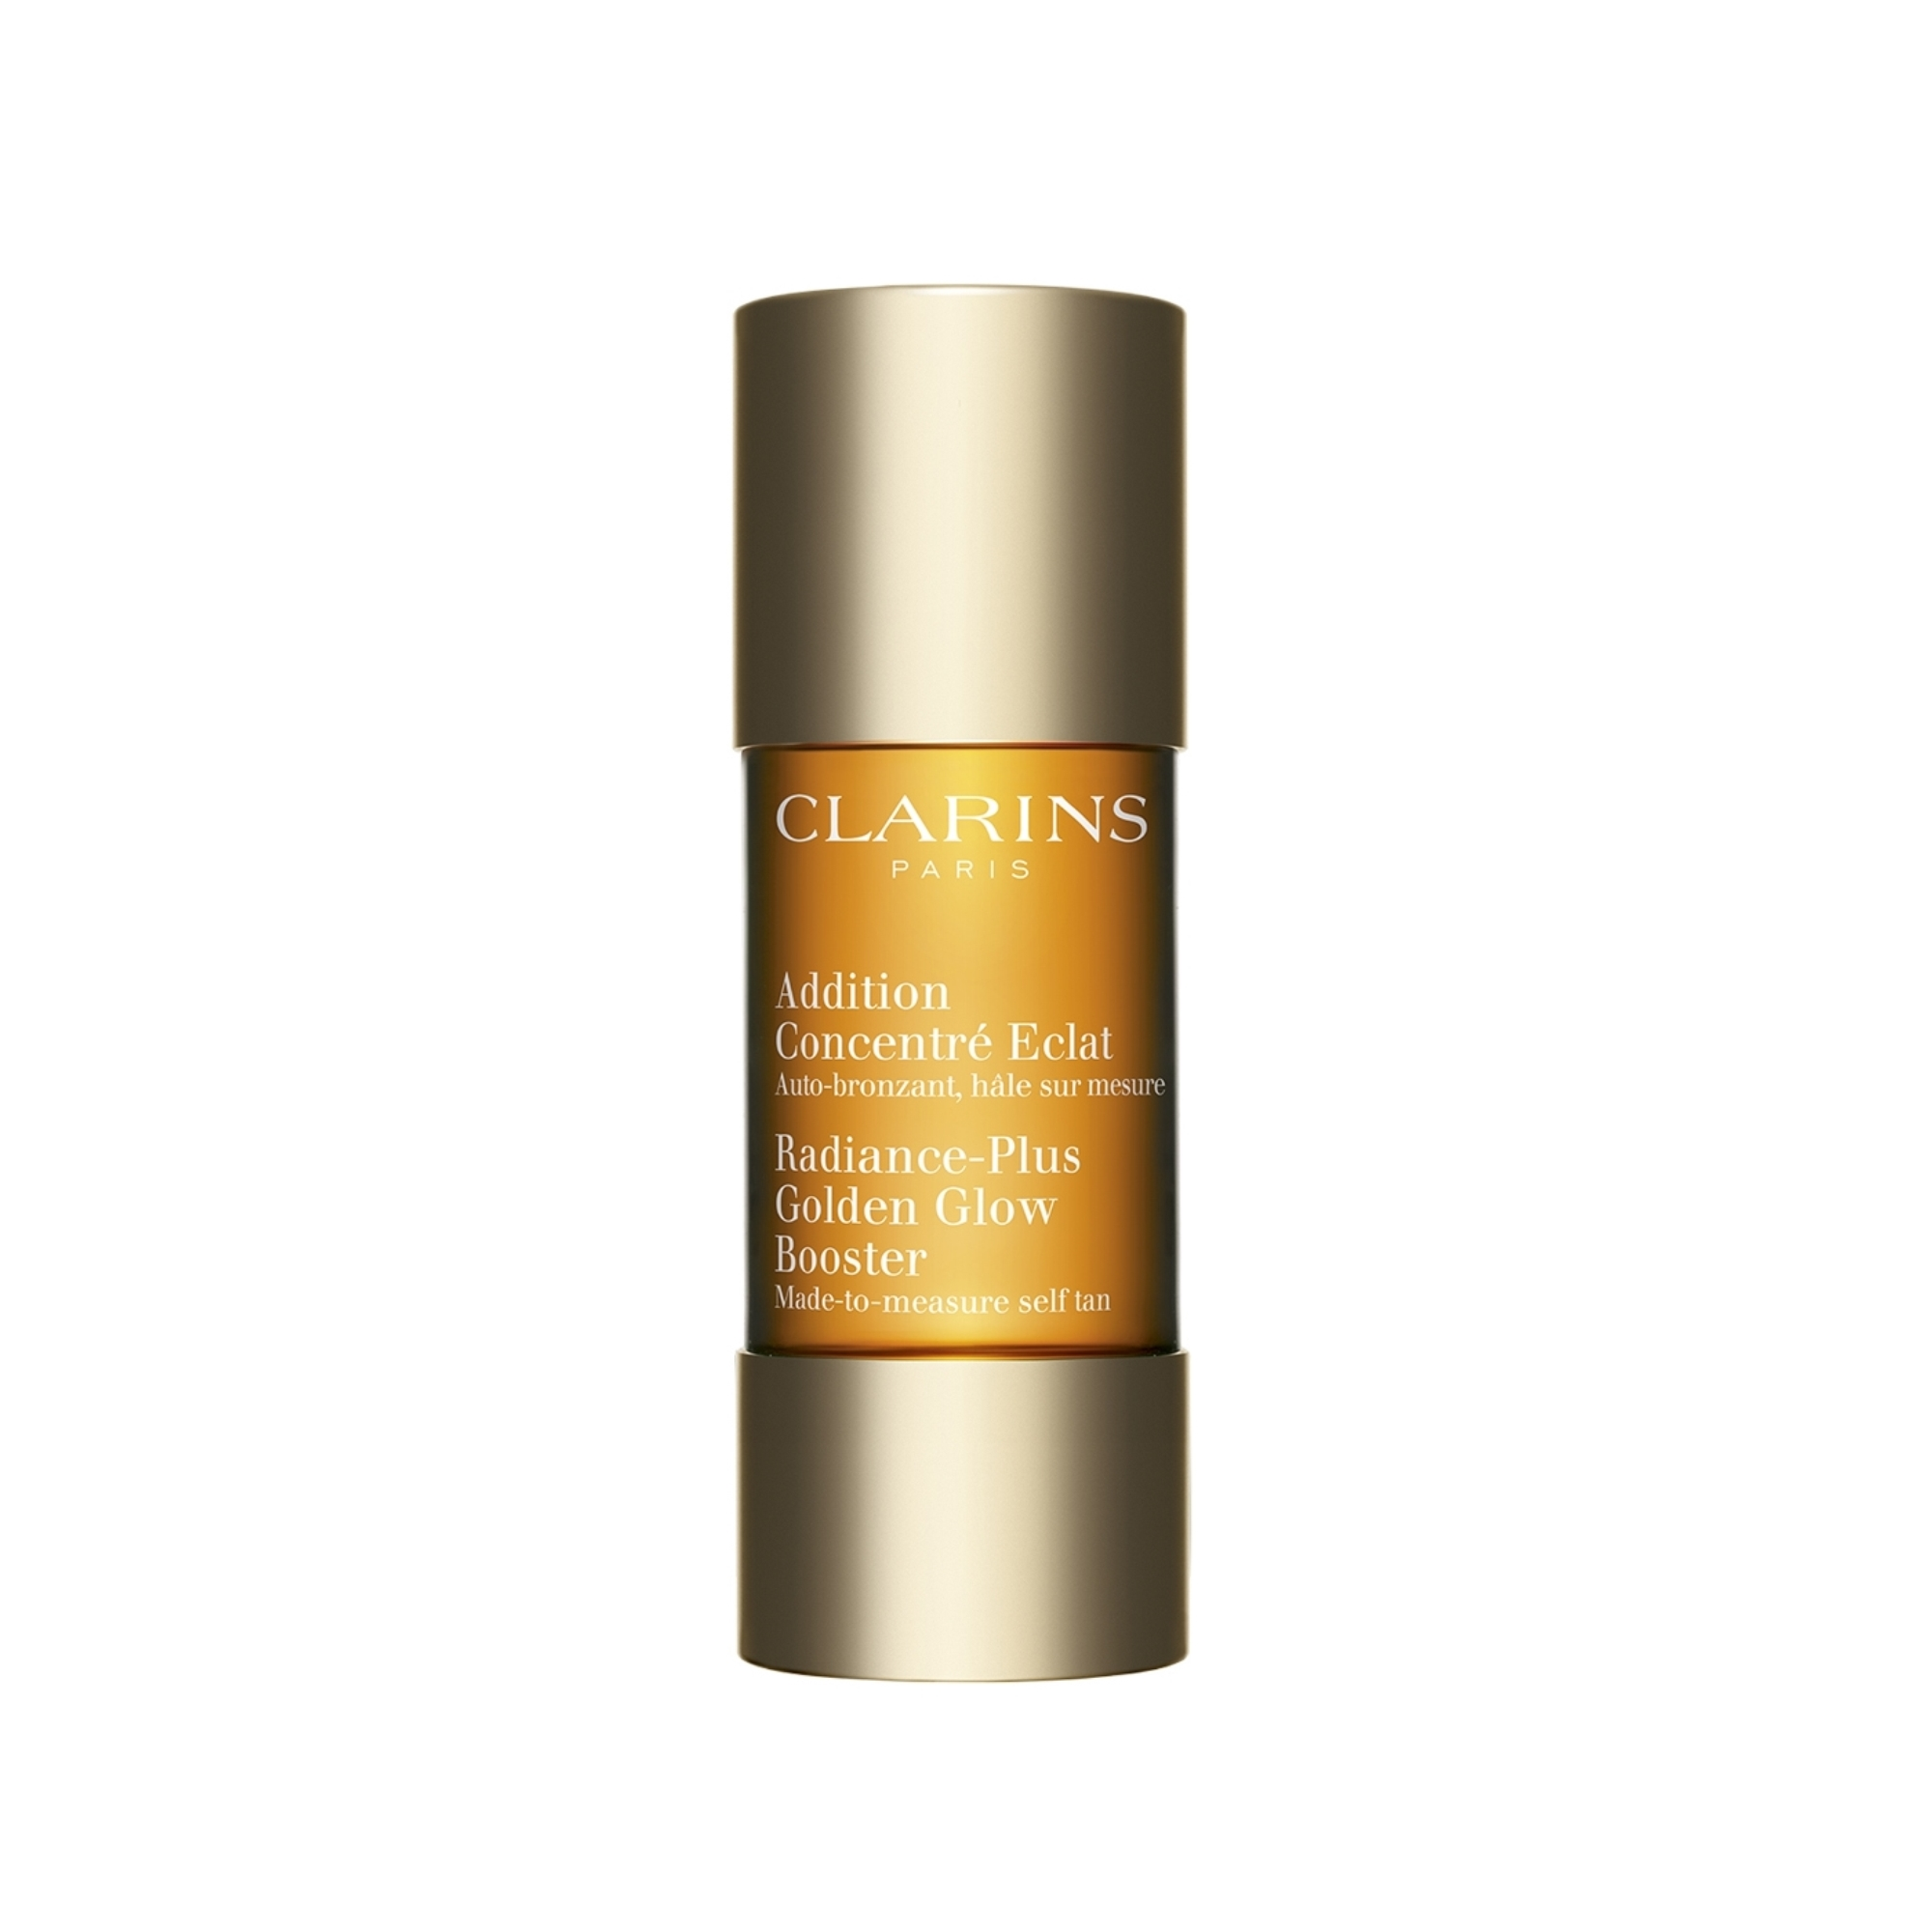 Radiance-Plus Golden Glow Booster Face